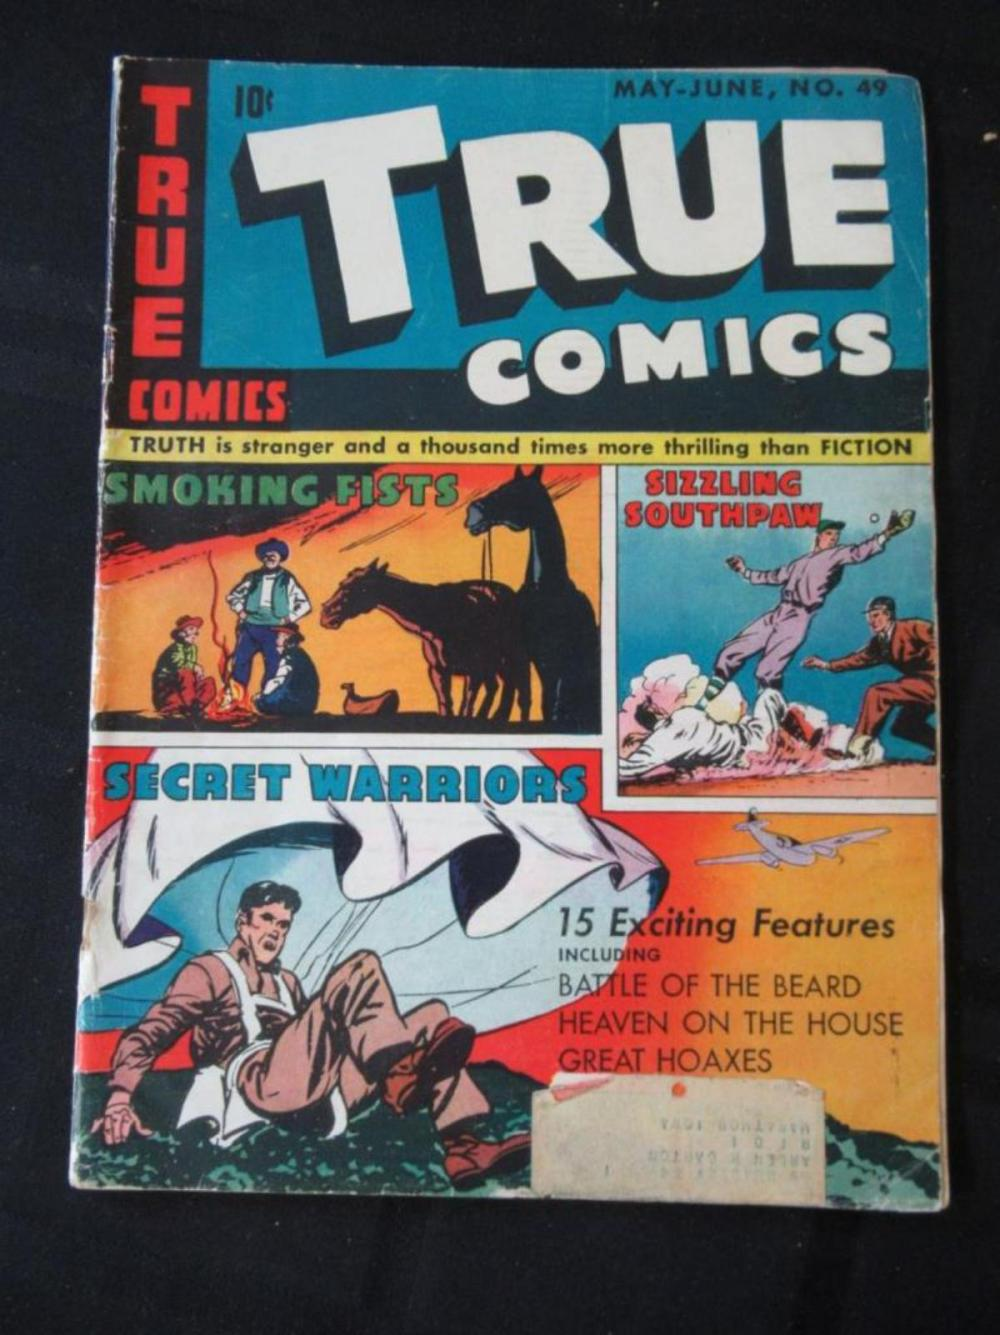 Lot 53: True Comics 10c #49 Smoking Fists